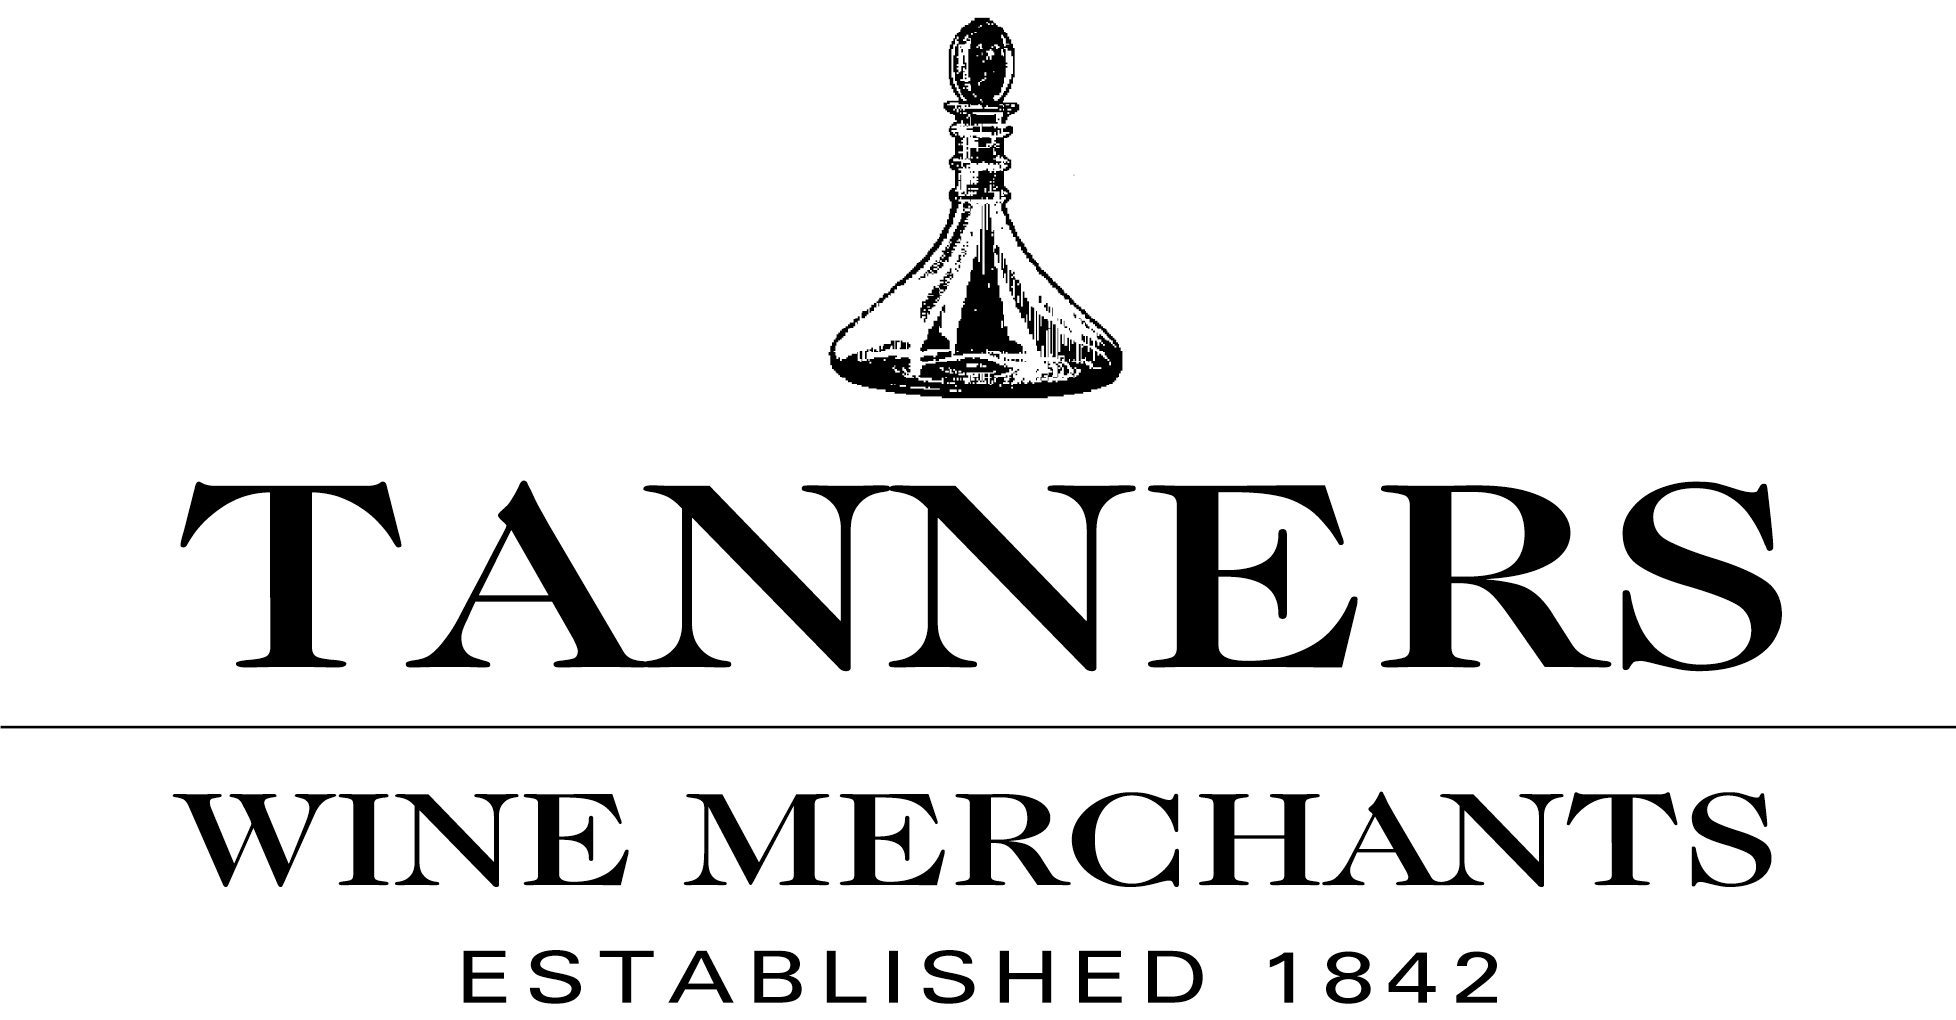 50 Years in partnership with local wine merchants Tanners